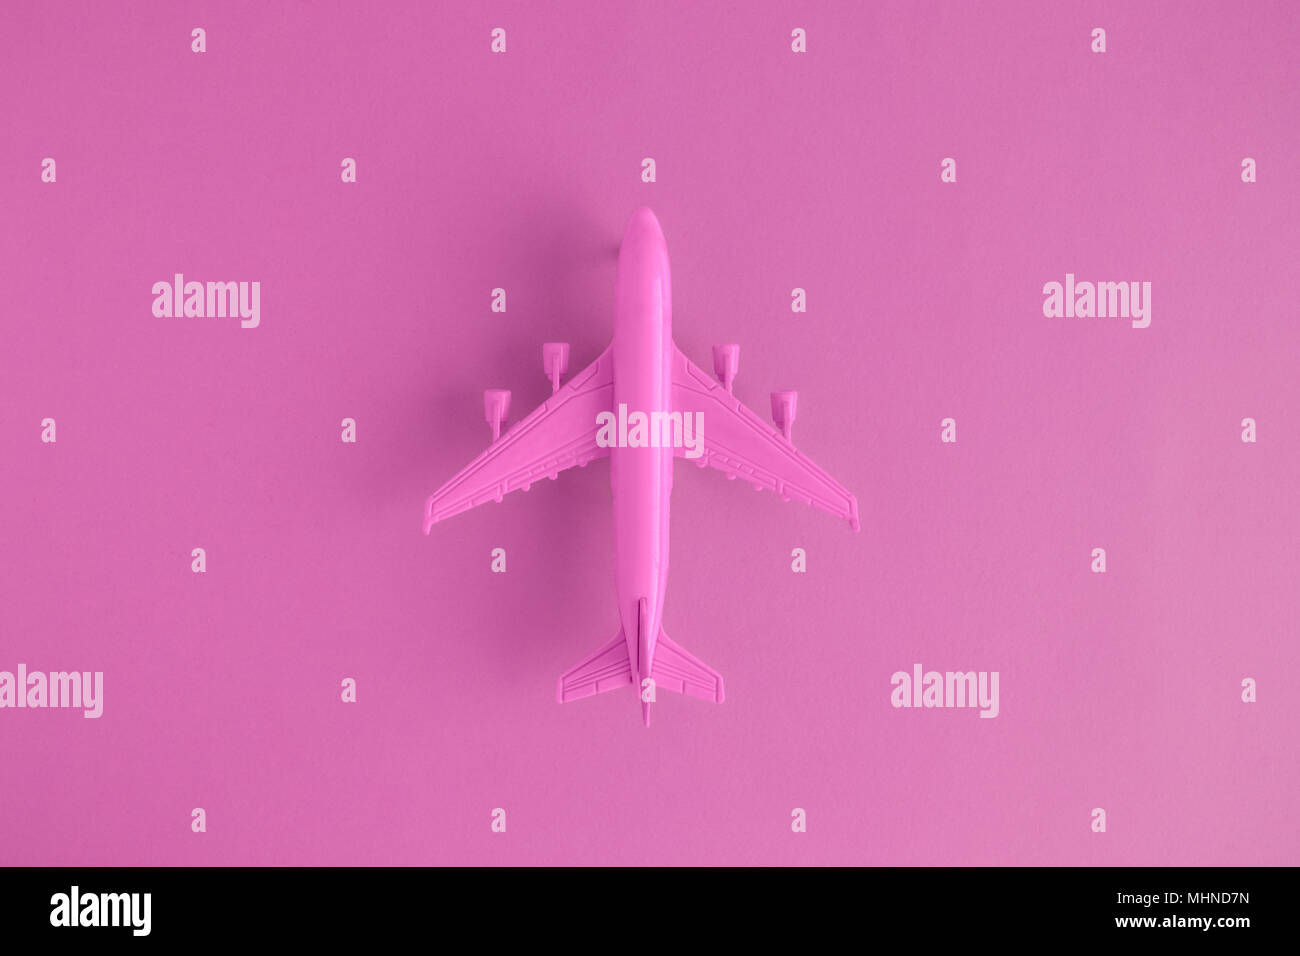 Flat lay of miniature toy airplane on pink background minimal trip and travel creative concepts. Stock Photo